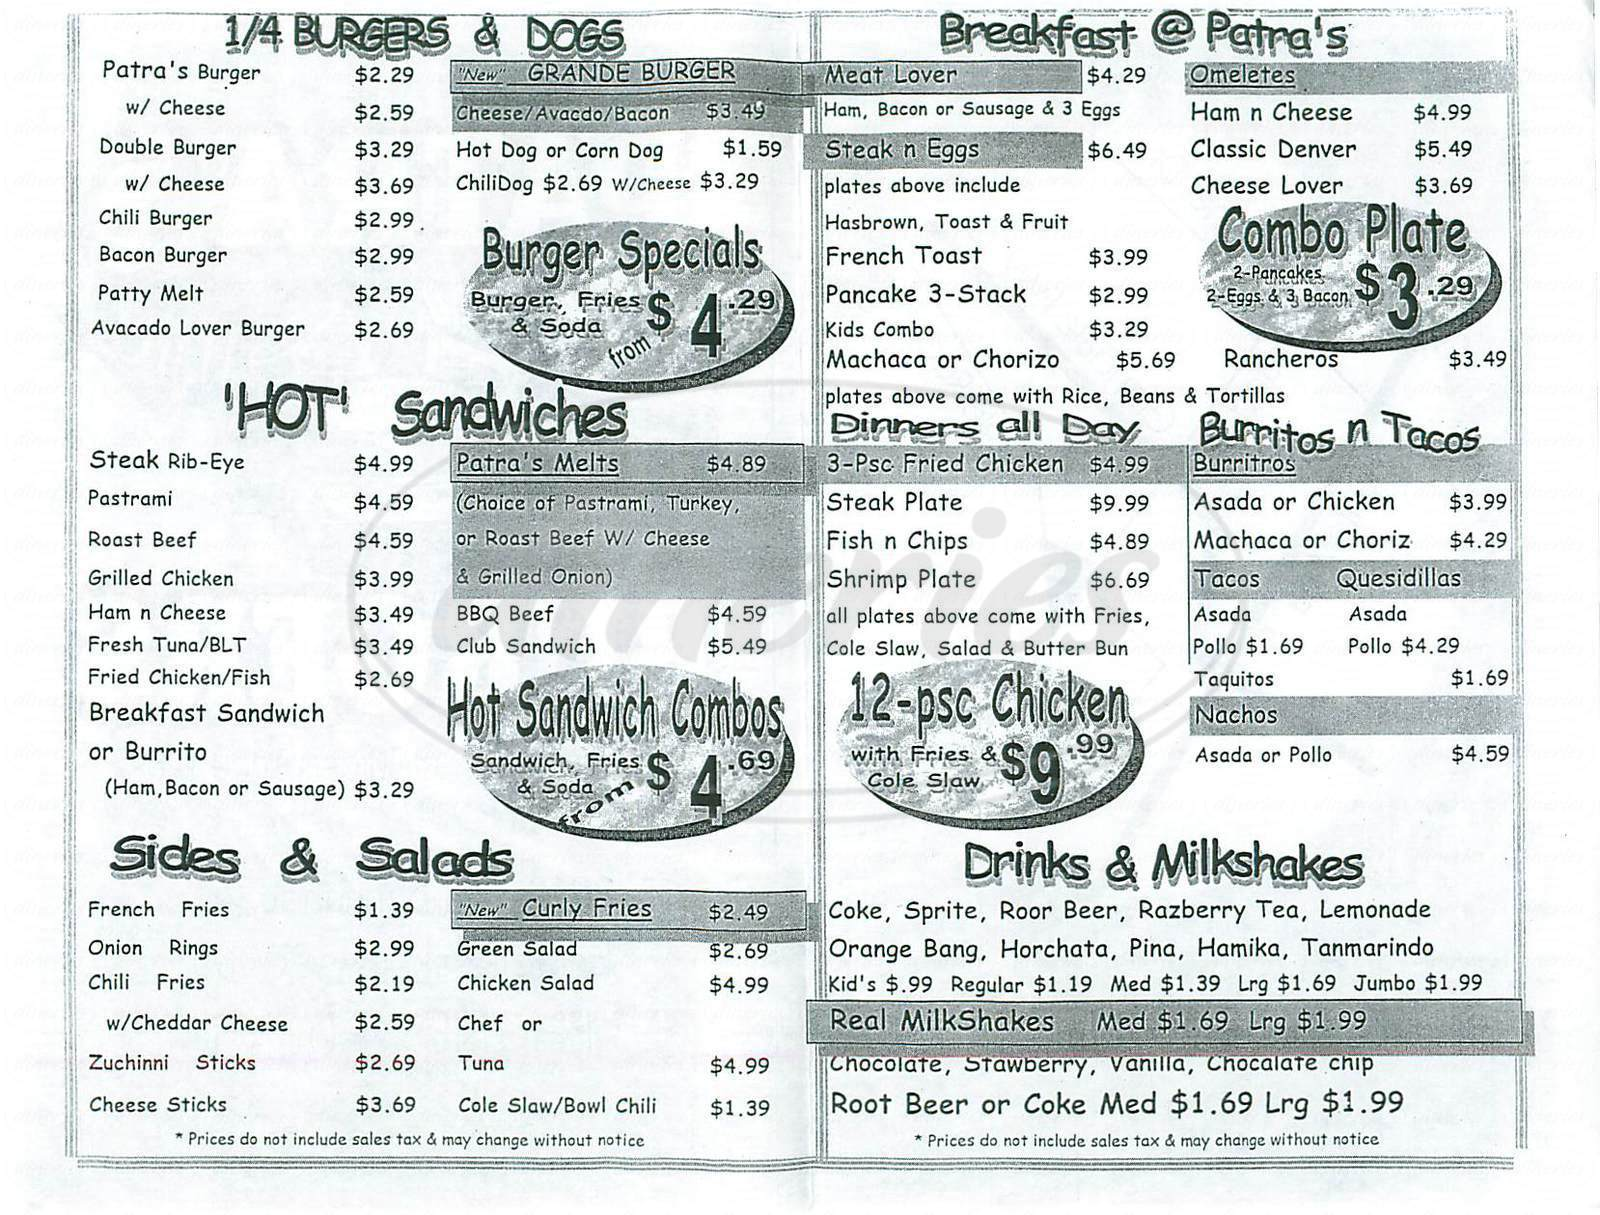 menu for Patra's Burgers